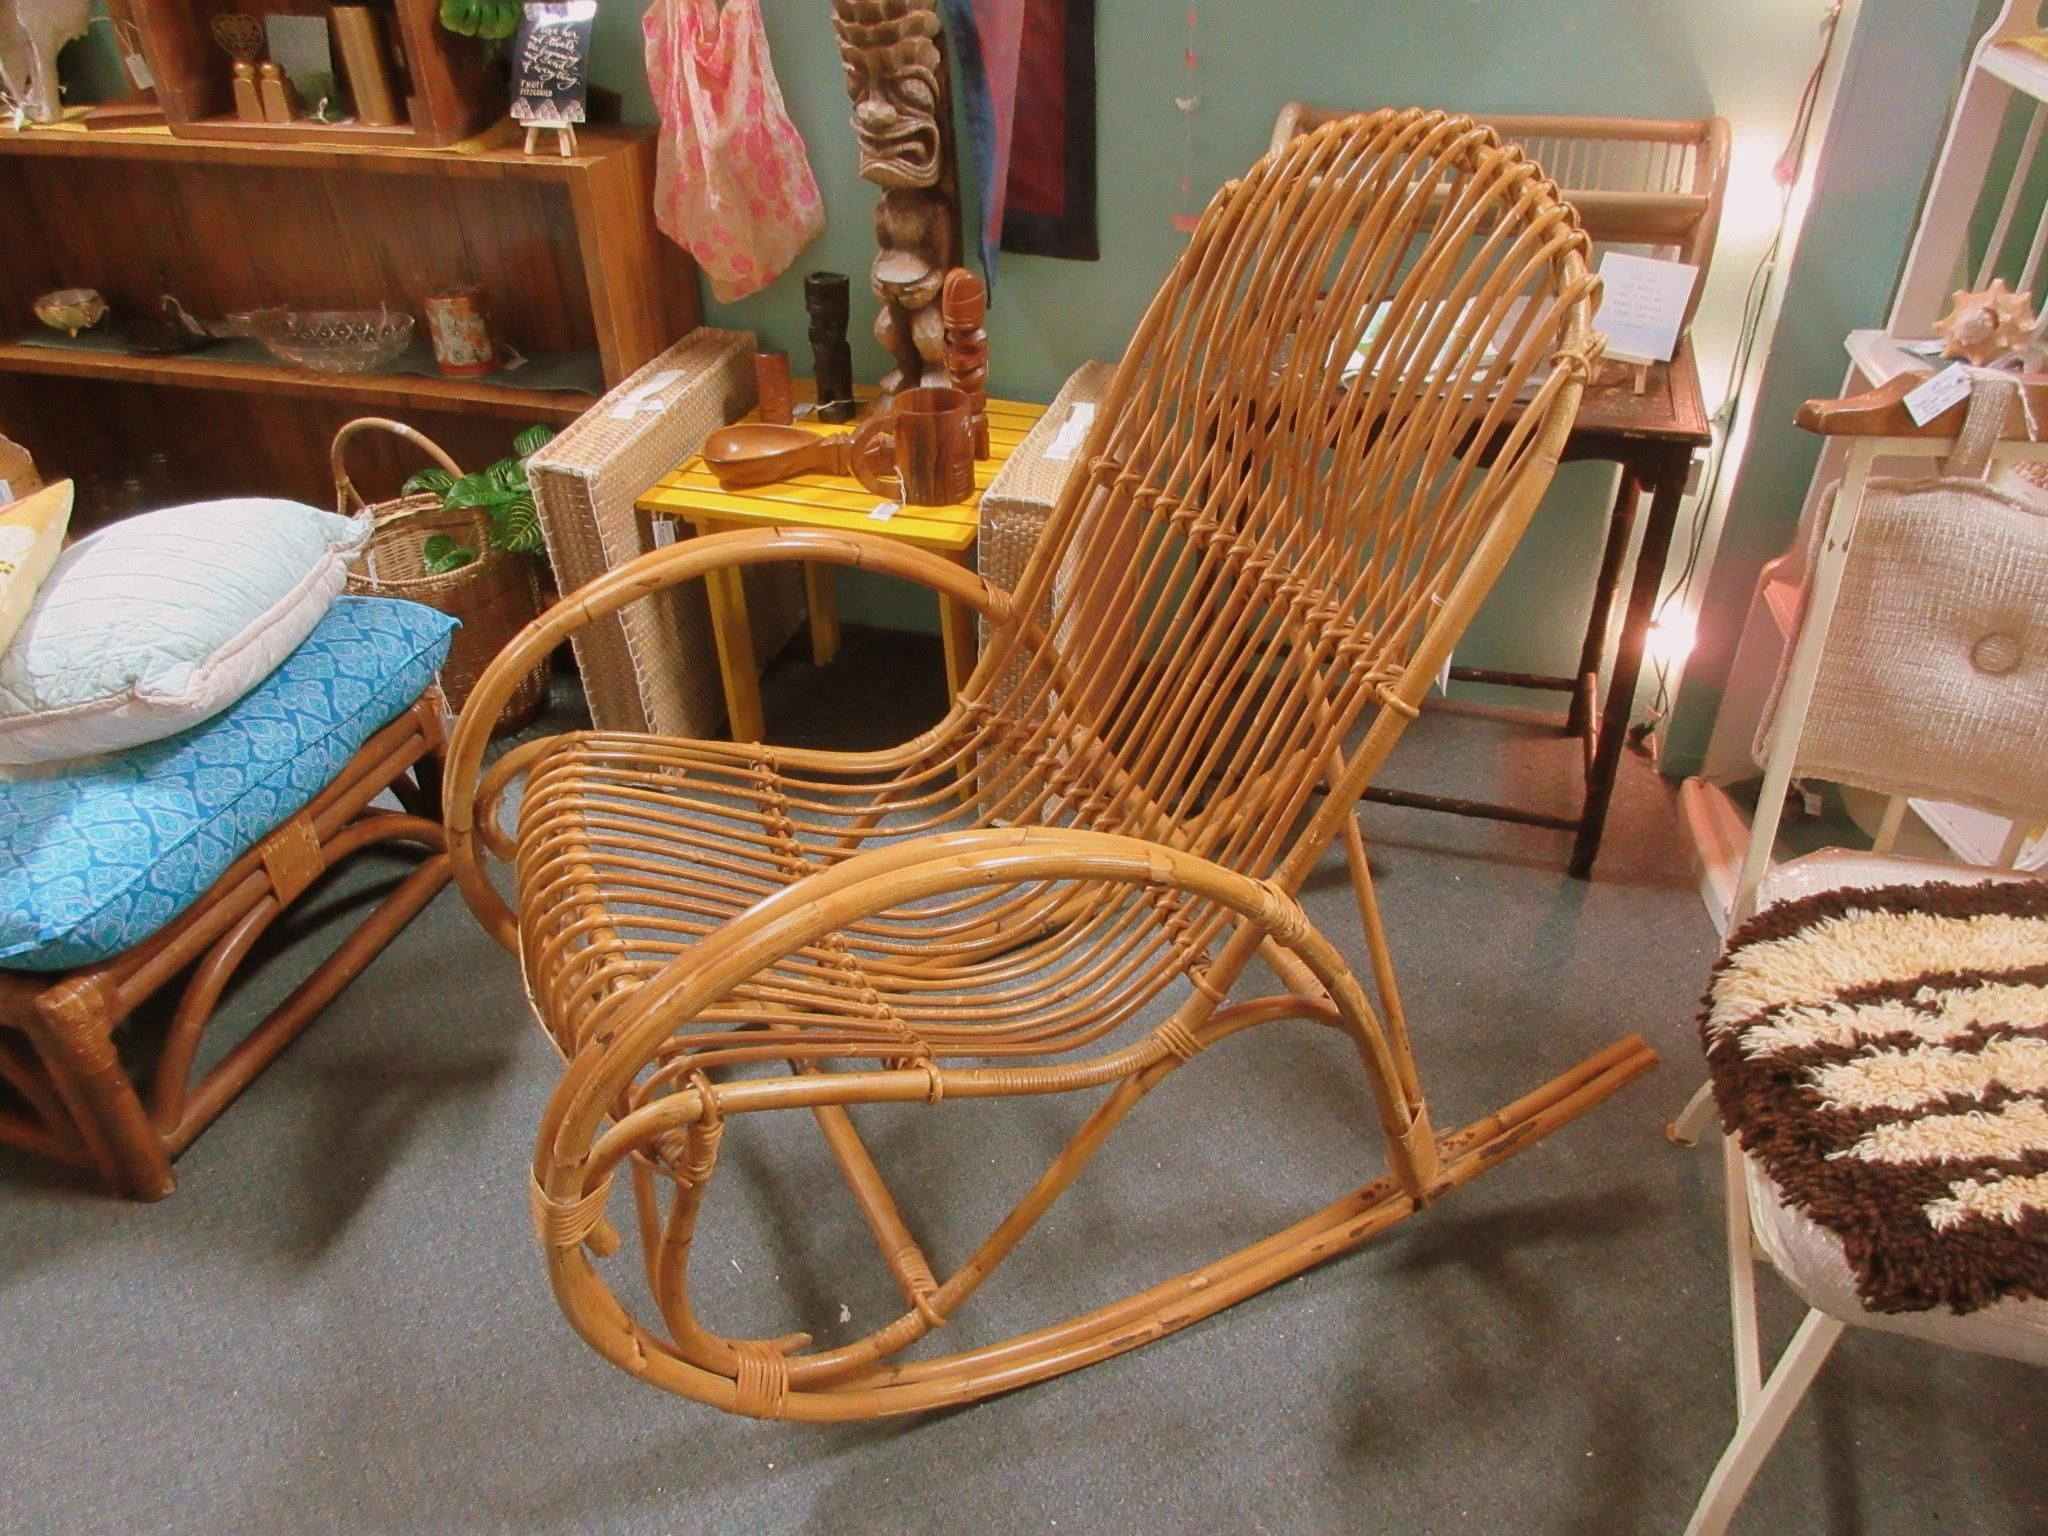 Rattan Rocking Chair From Vendor  In Booth  Priced At